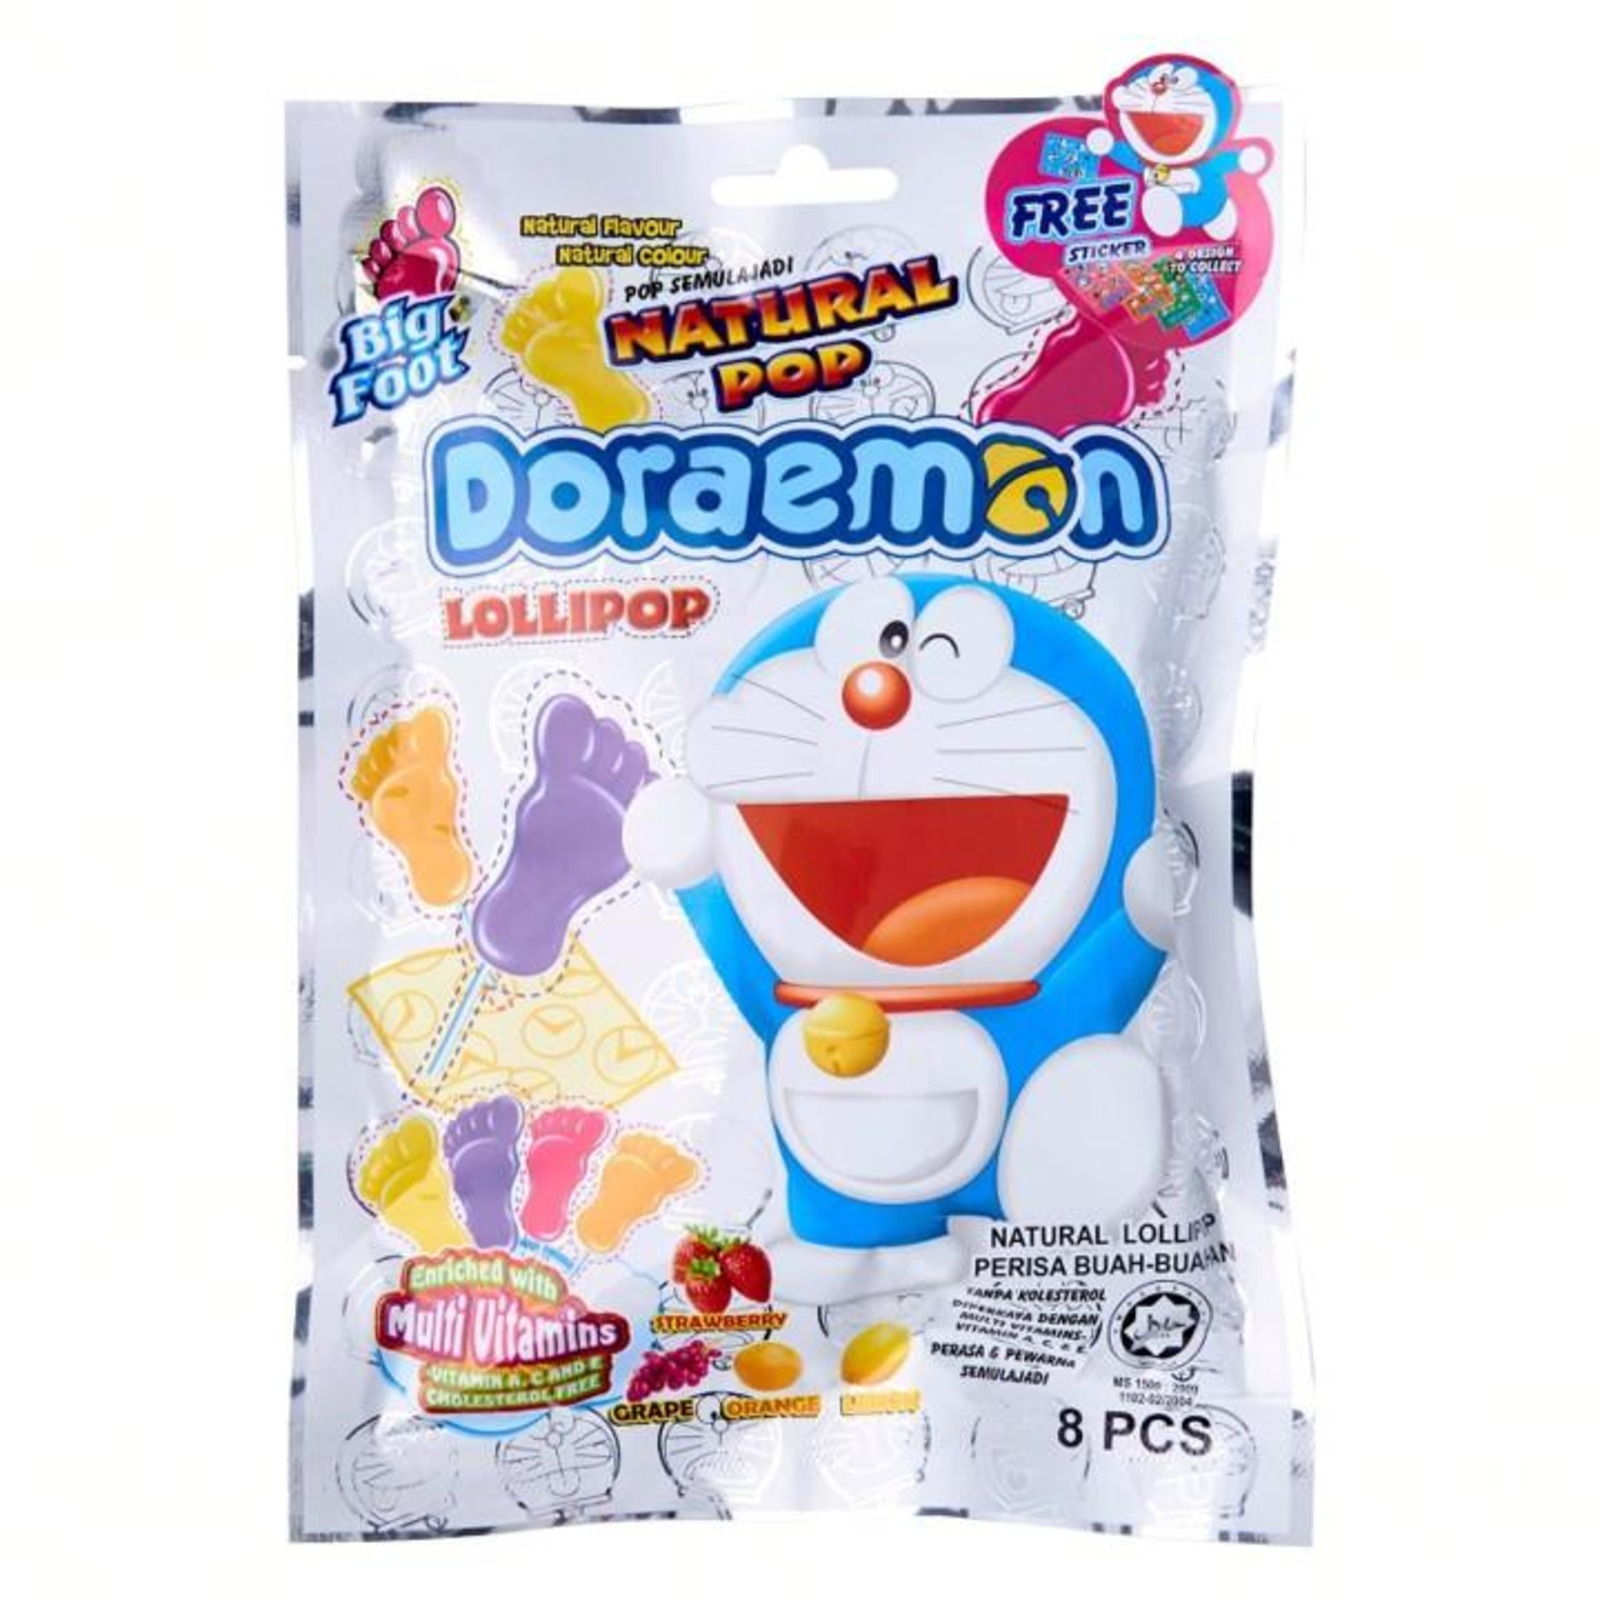 Big Foot Doraemon Lollipop Natural Pop 8pcs